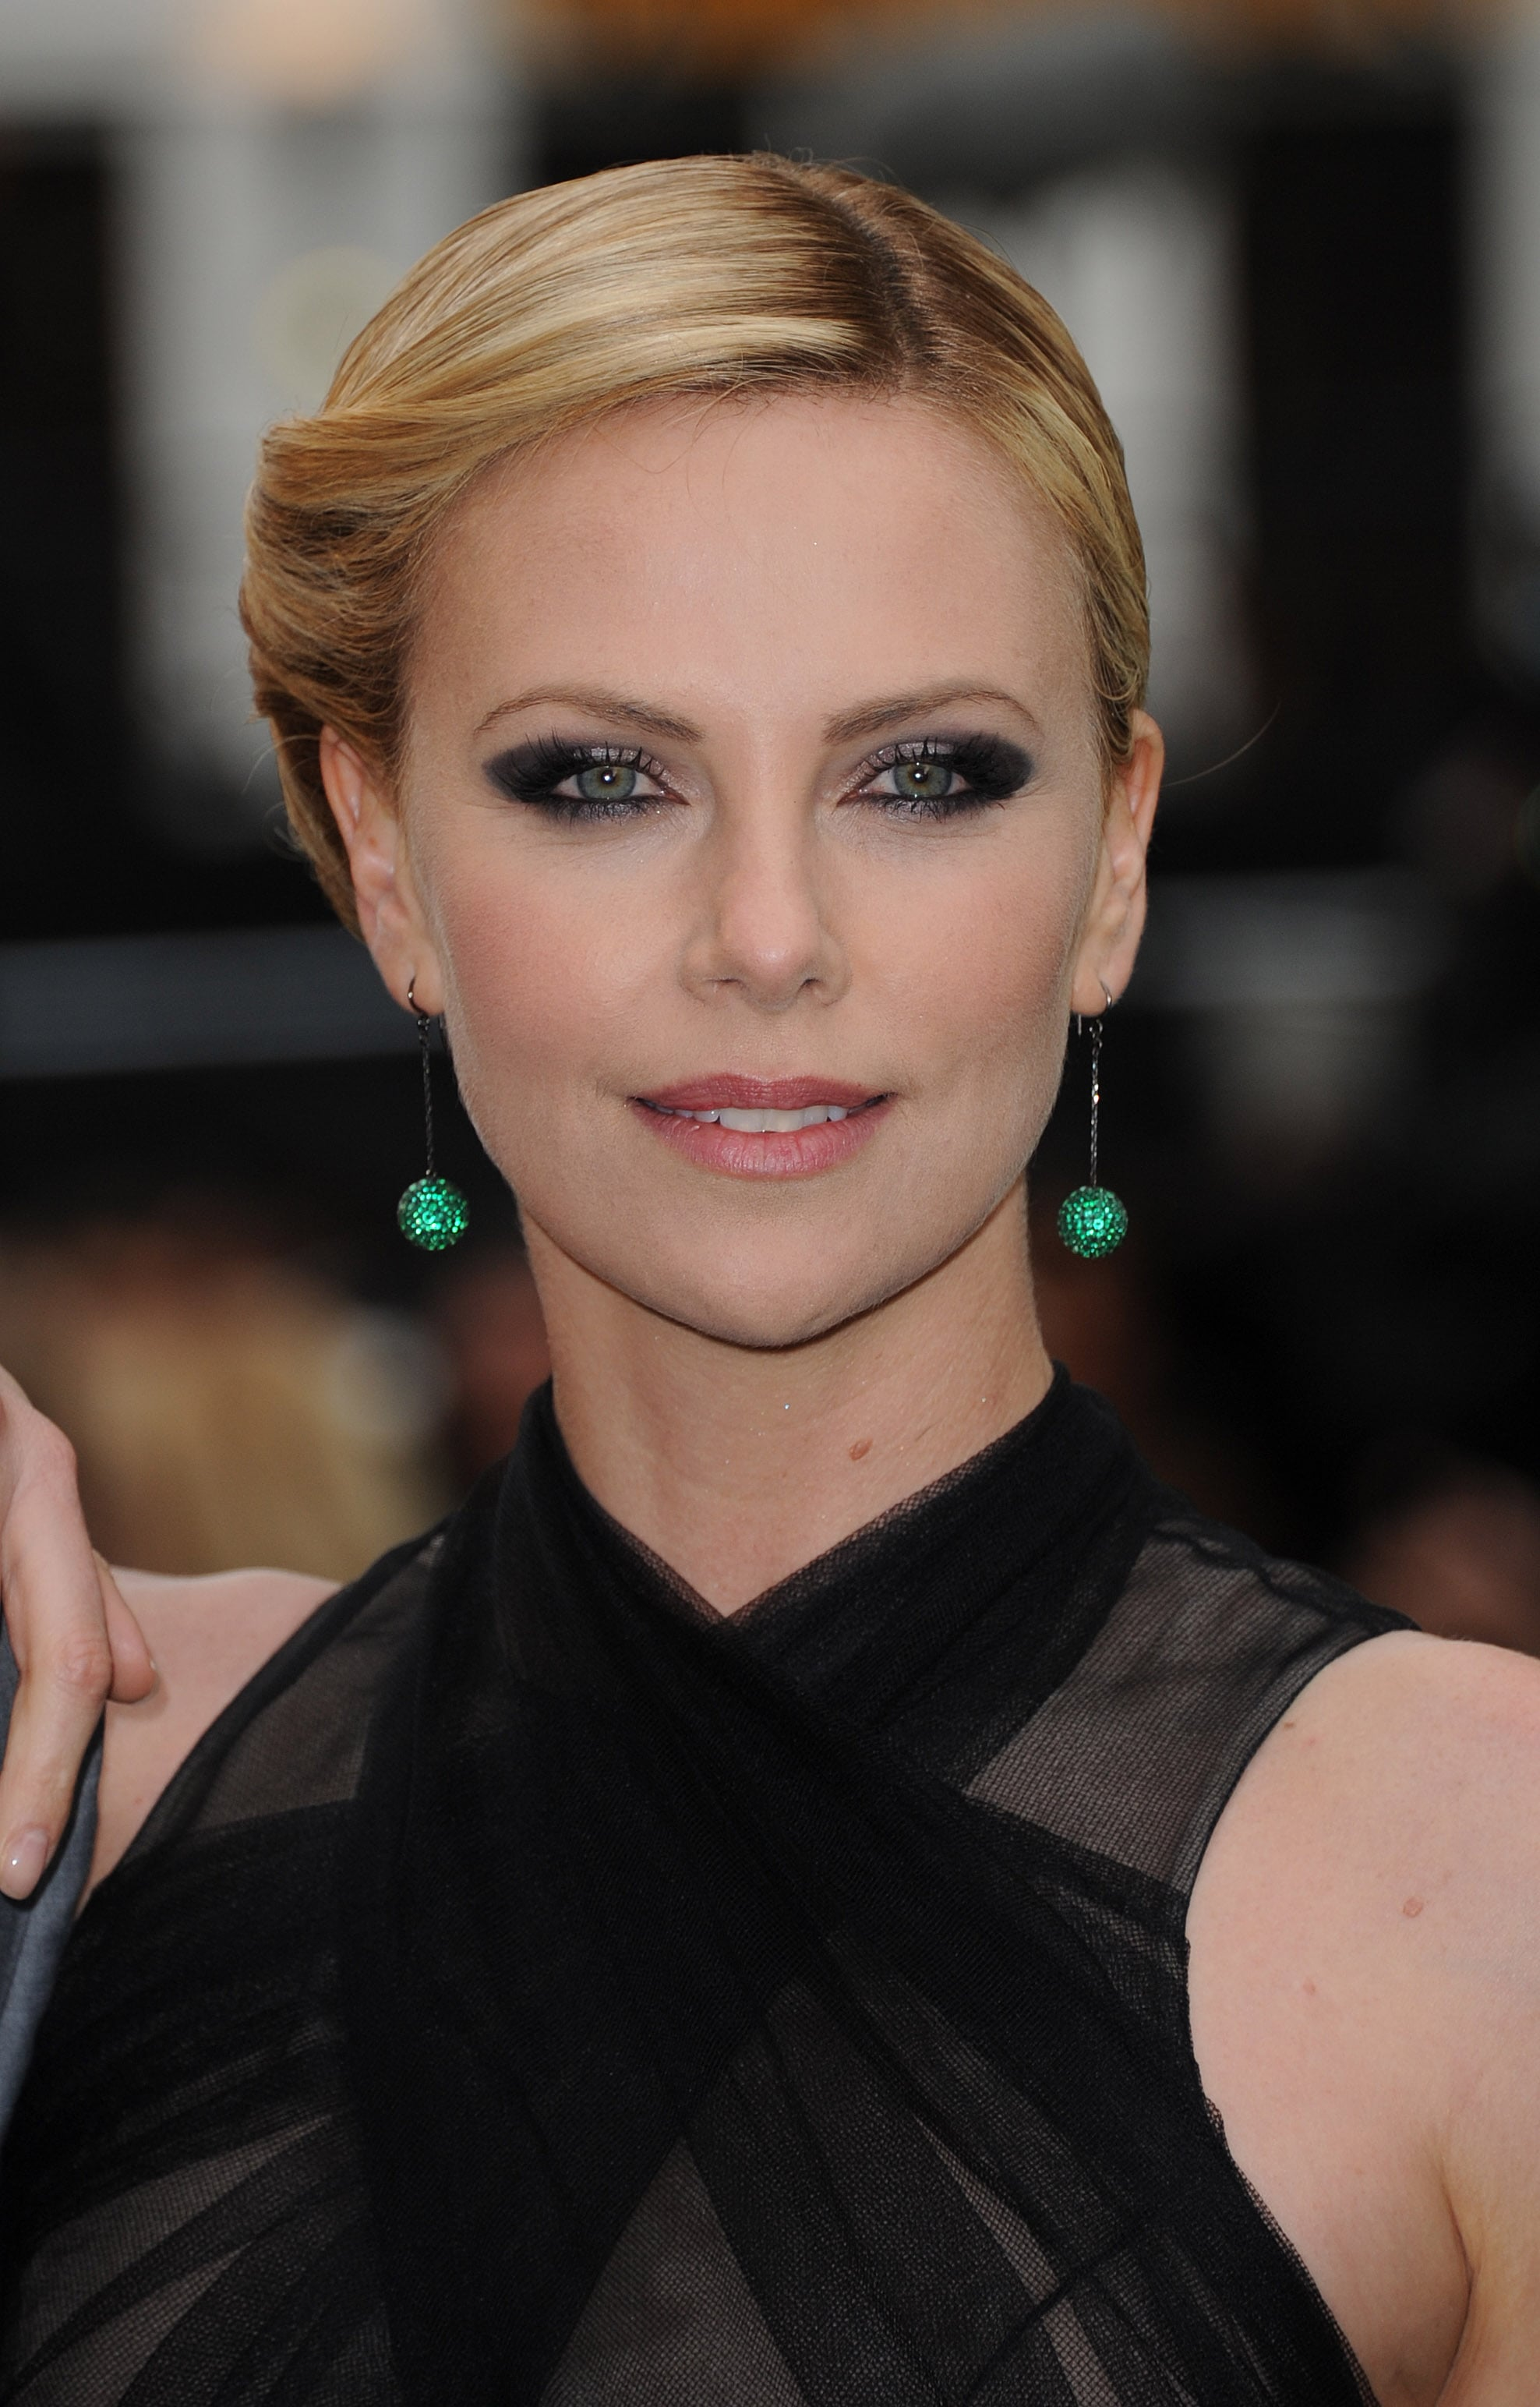 Charlize Theron Snow White Makeup Channeling her role as...